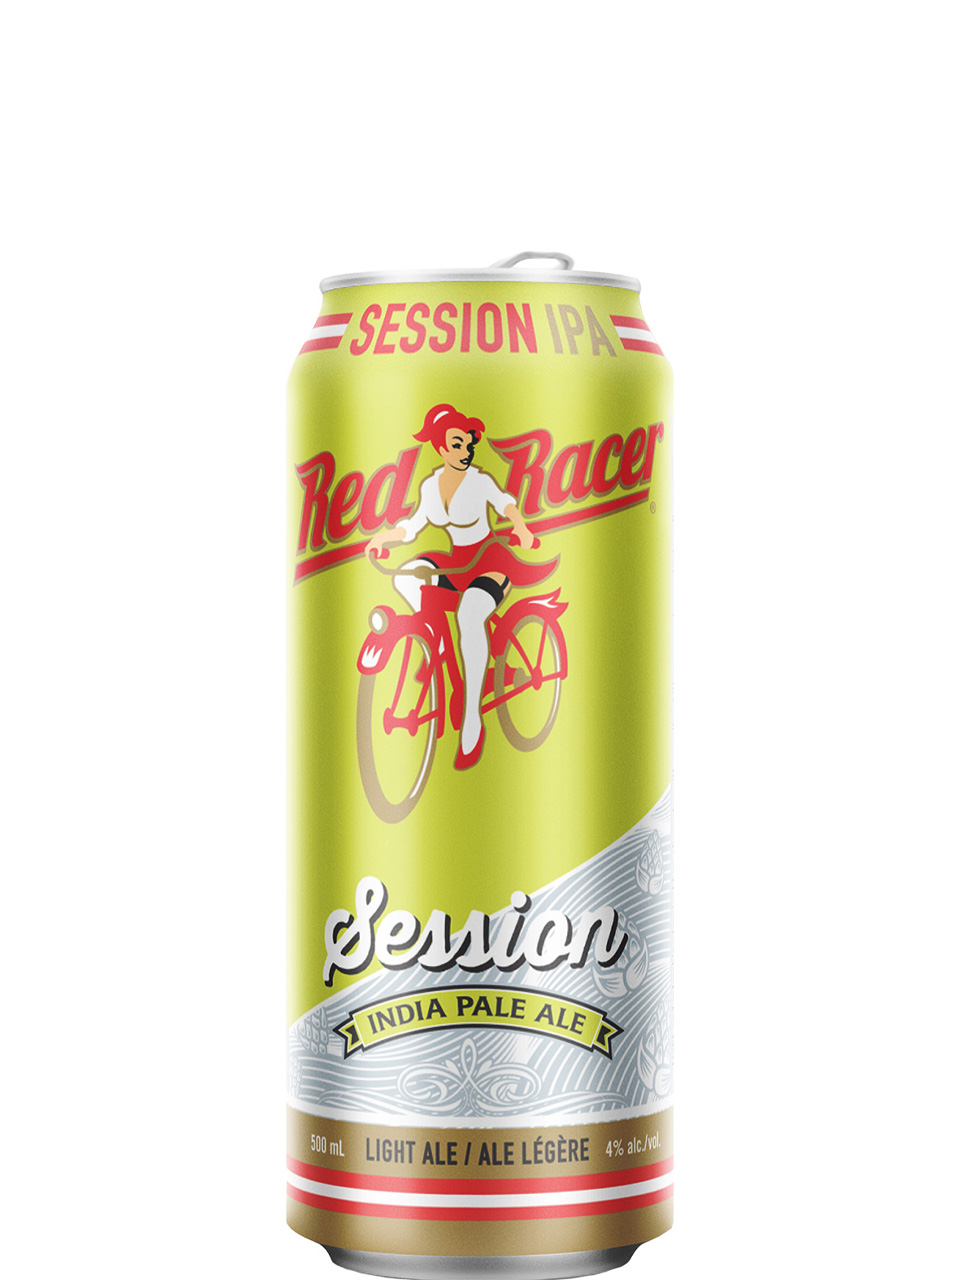 Red Racer India Session Ale 6 Pack Cans